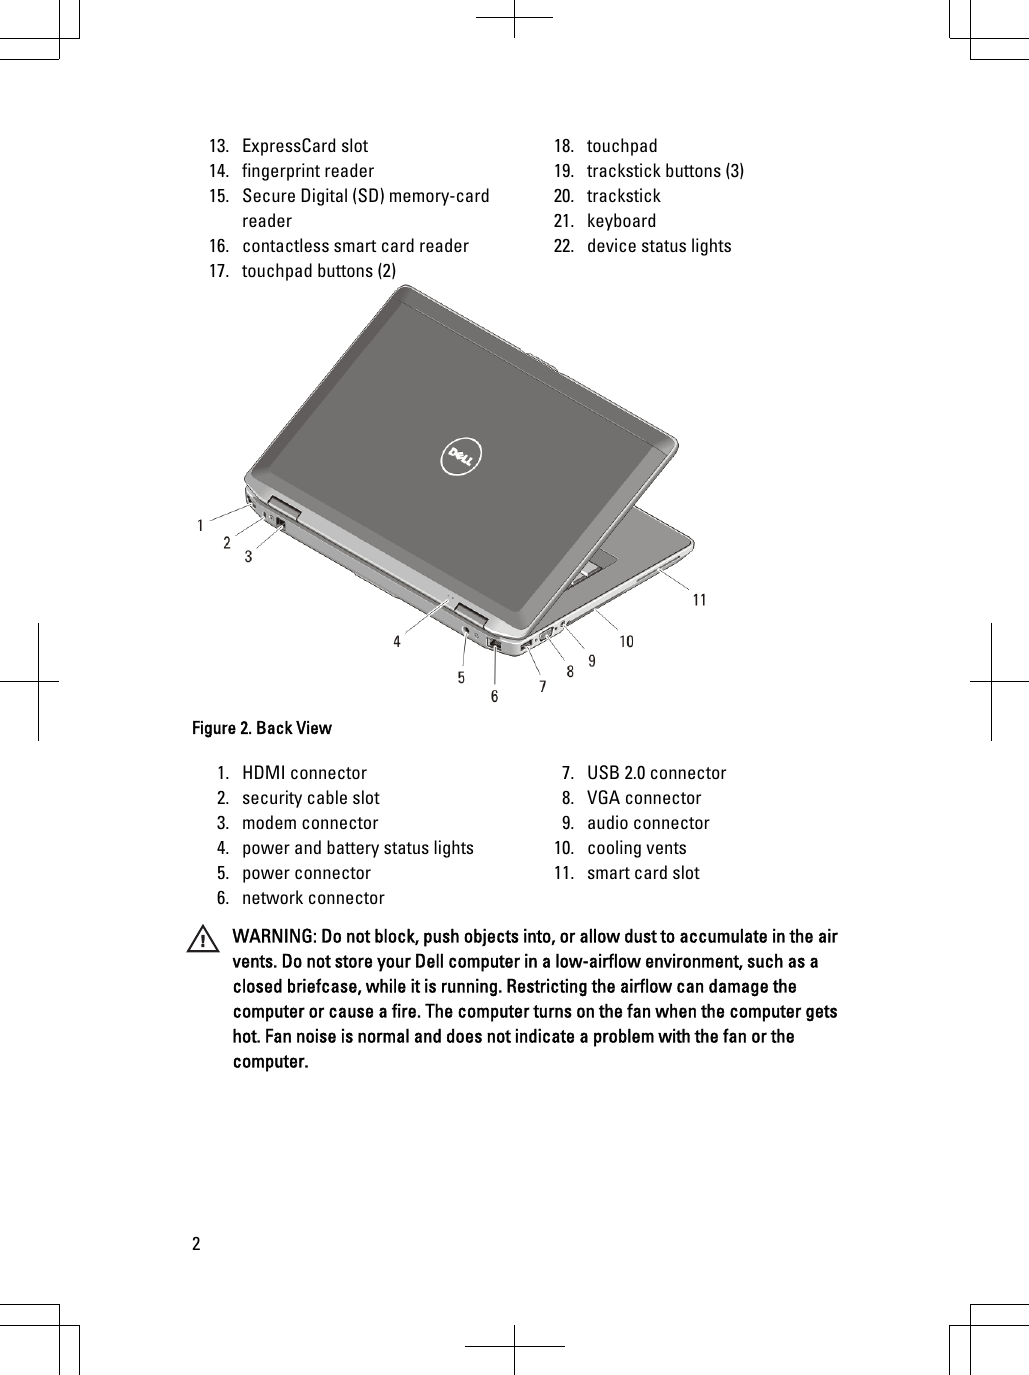 Dell Latitude E6520 Early 2011 Tech Sheet Setup And Features Information